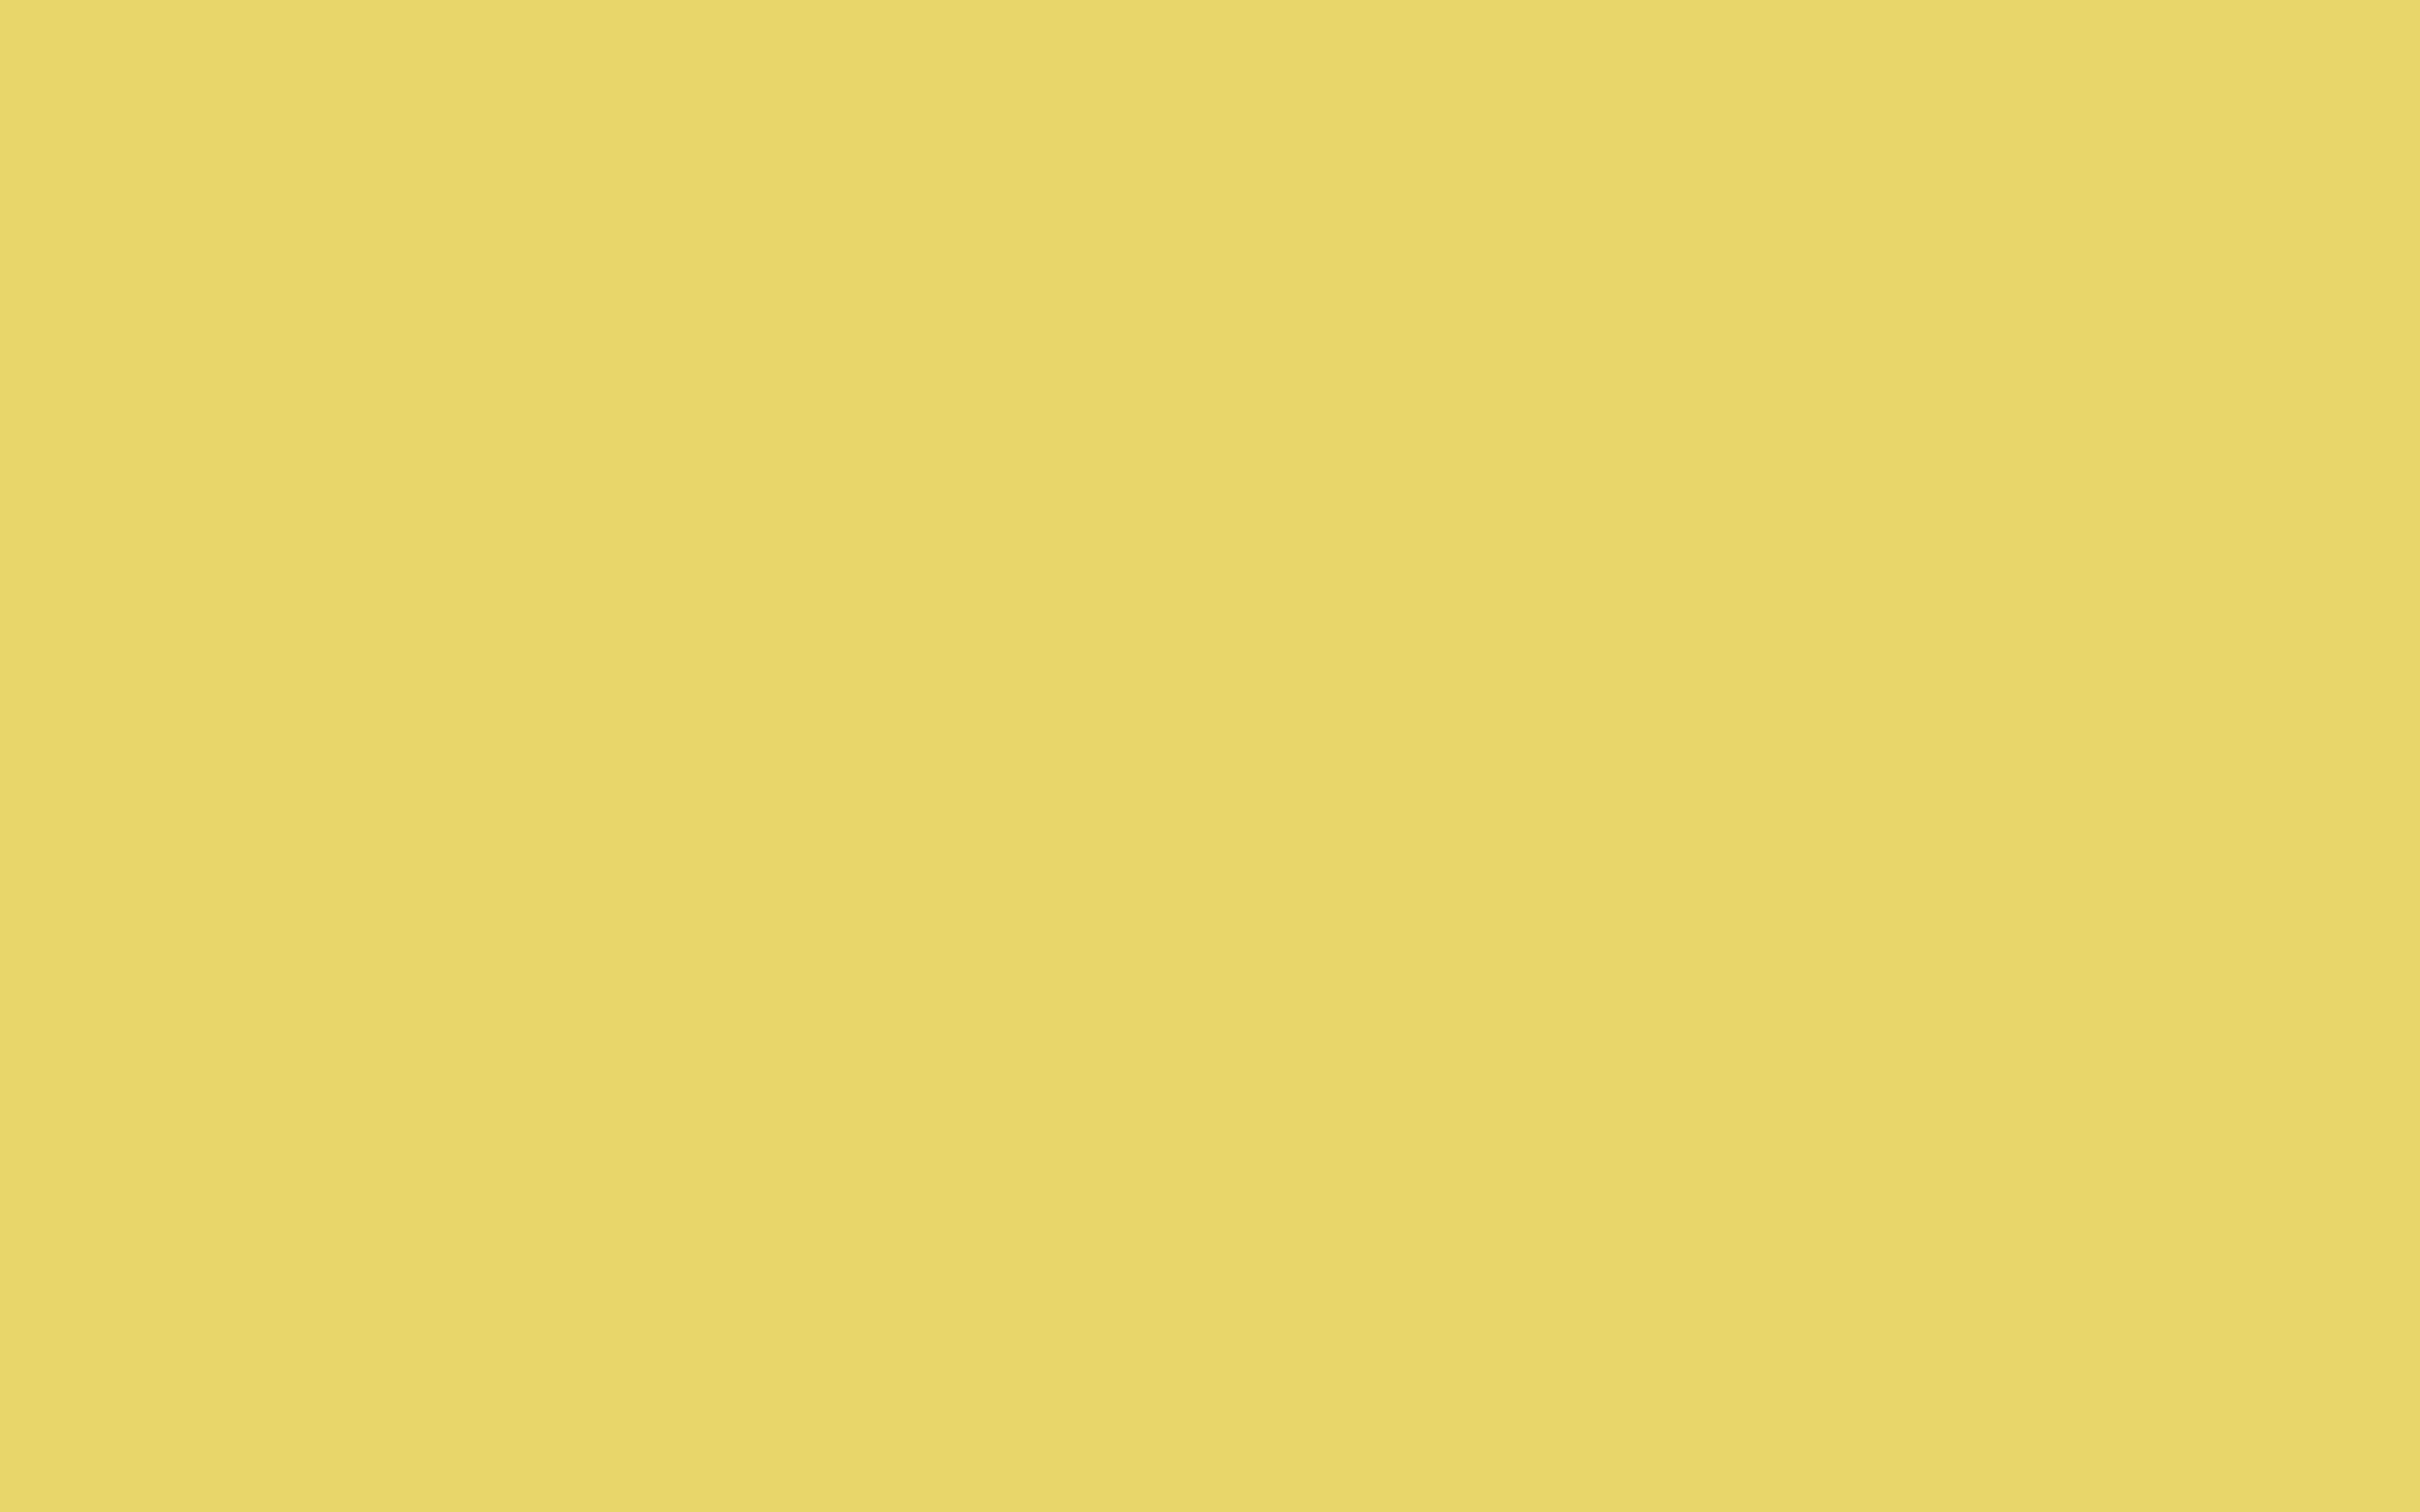 2560x1600 Arylide Yellow Solid Color Background